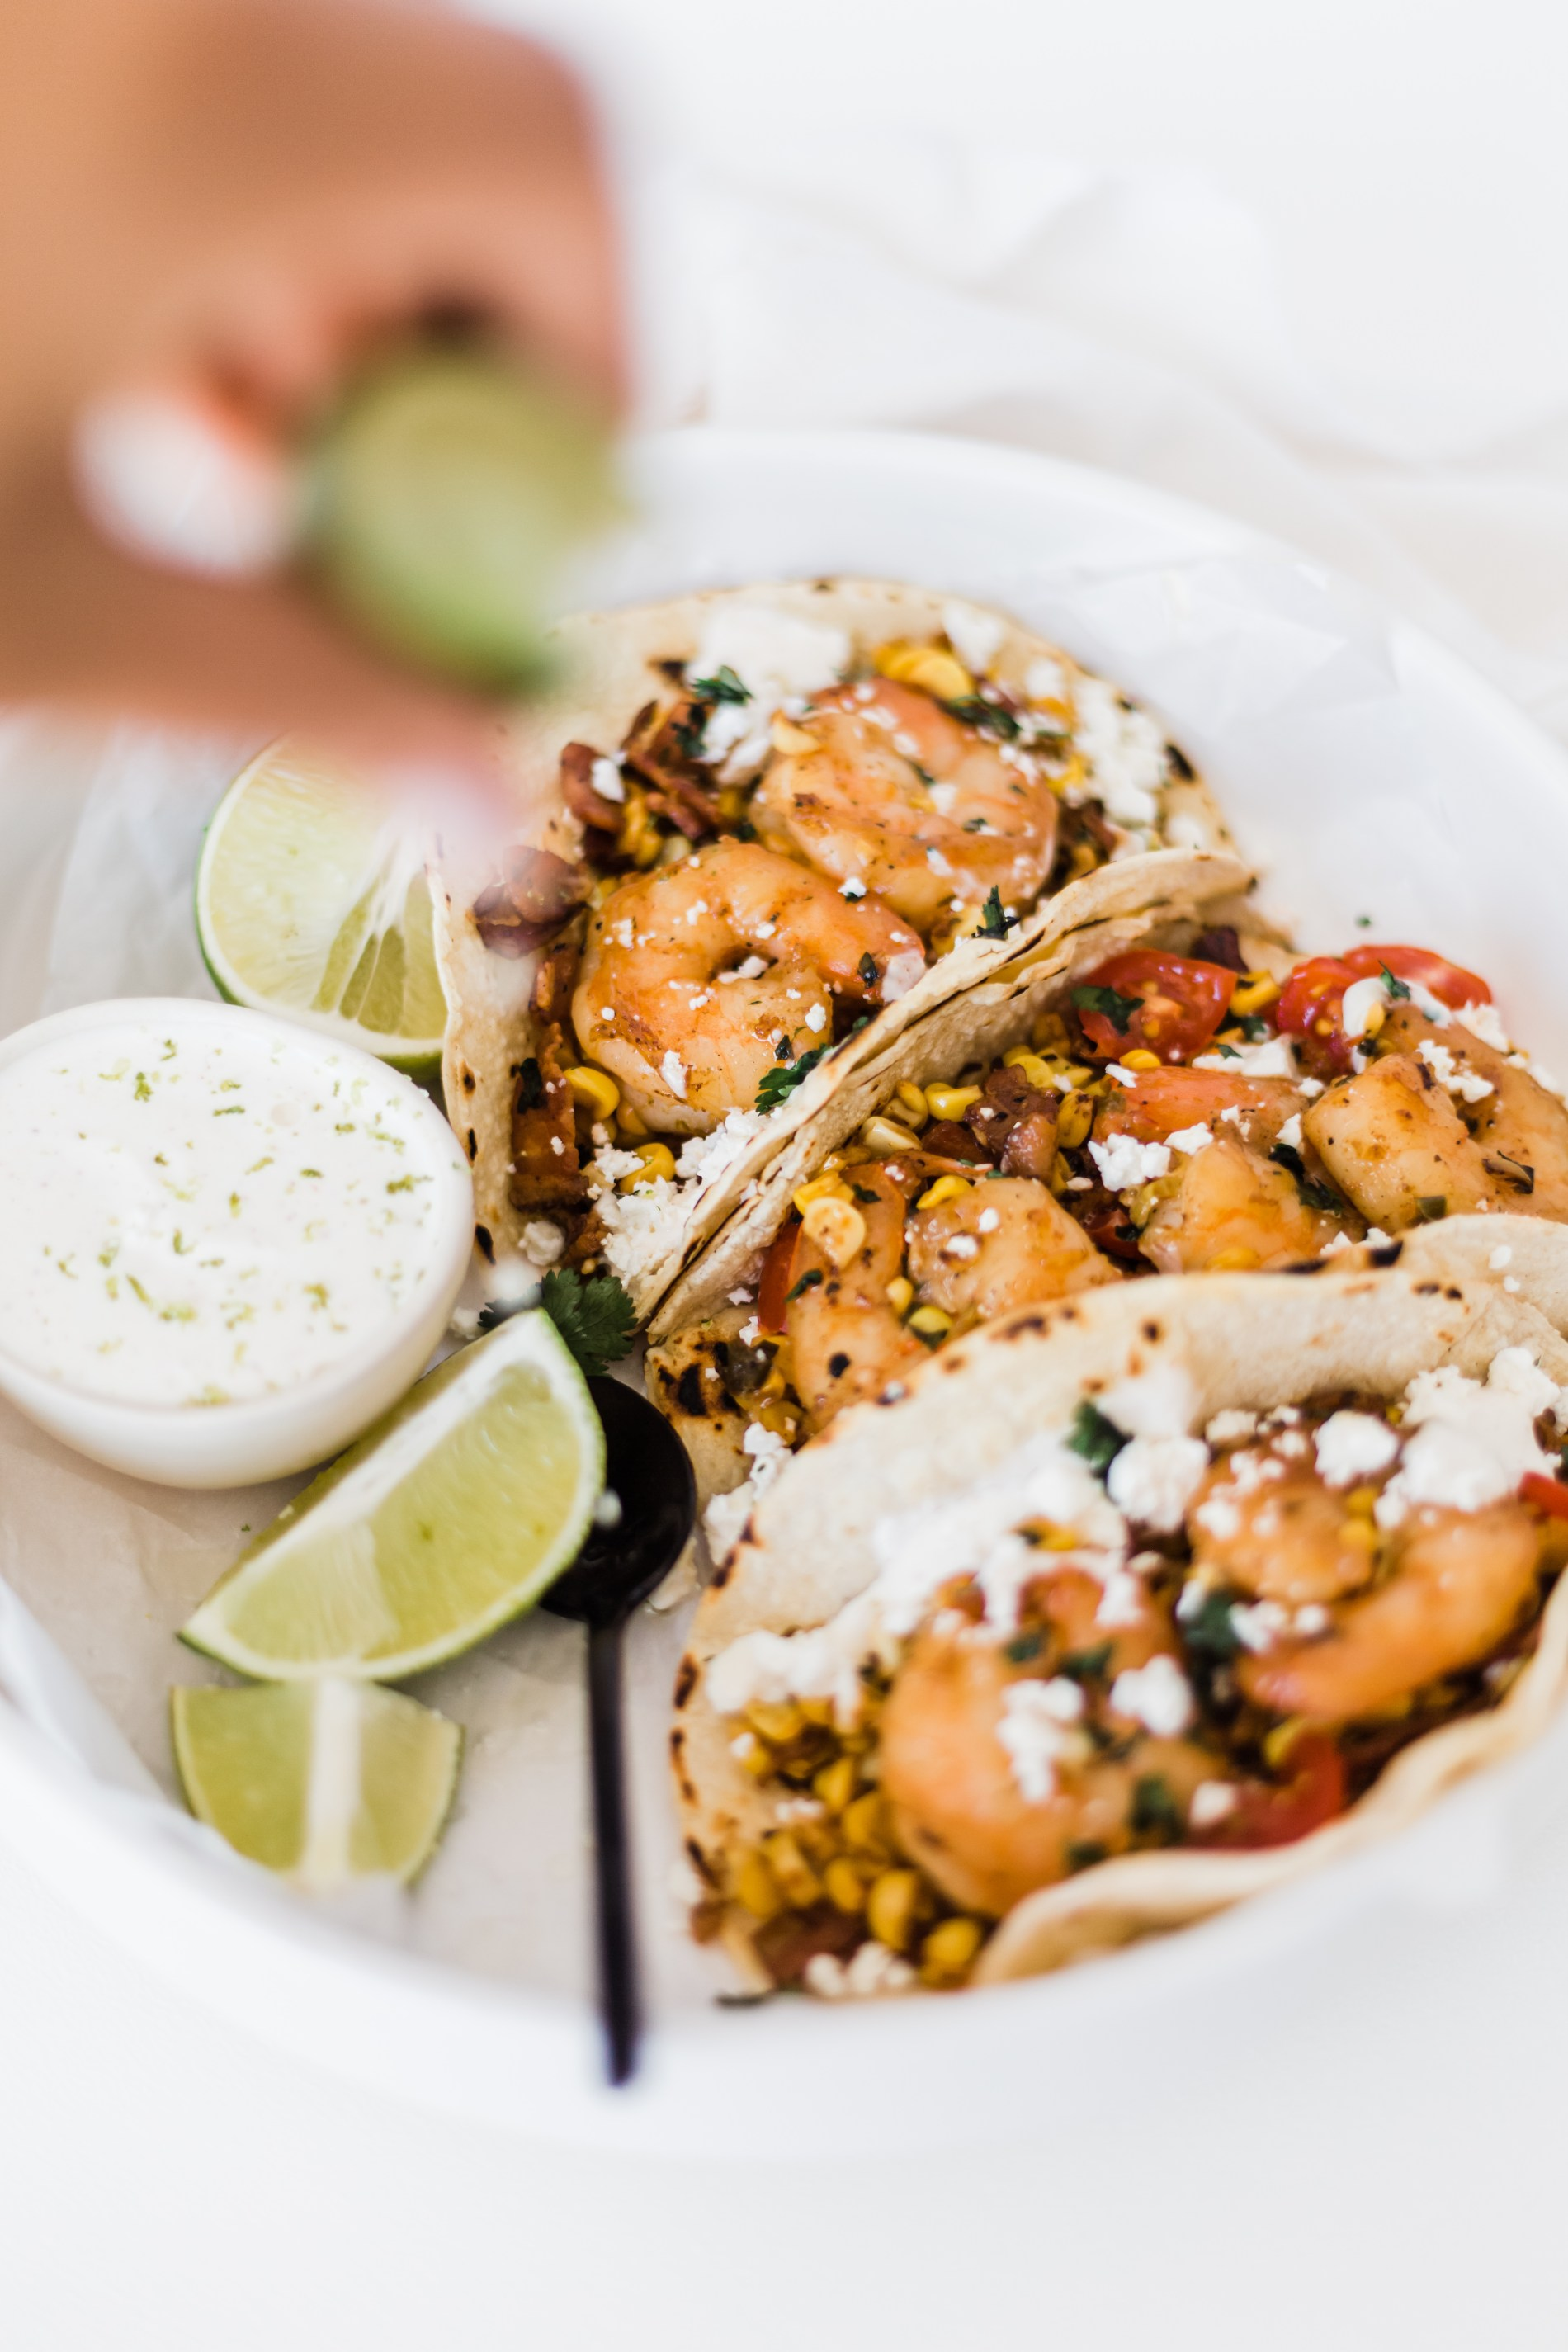 Shrimp & bacon tacos with corn, lime crema, and crumbled feta cheese | #shrimptacos #tacotuesday #bacon #seafood #easyrecipe